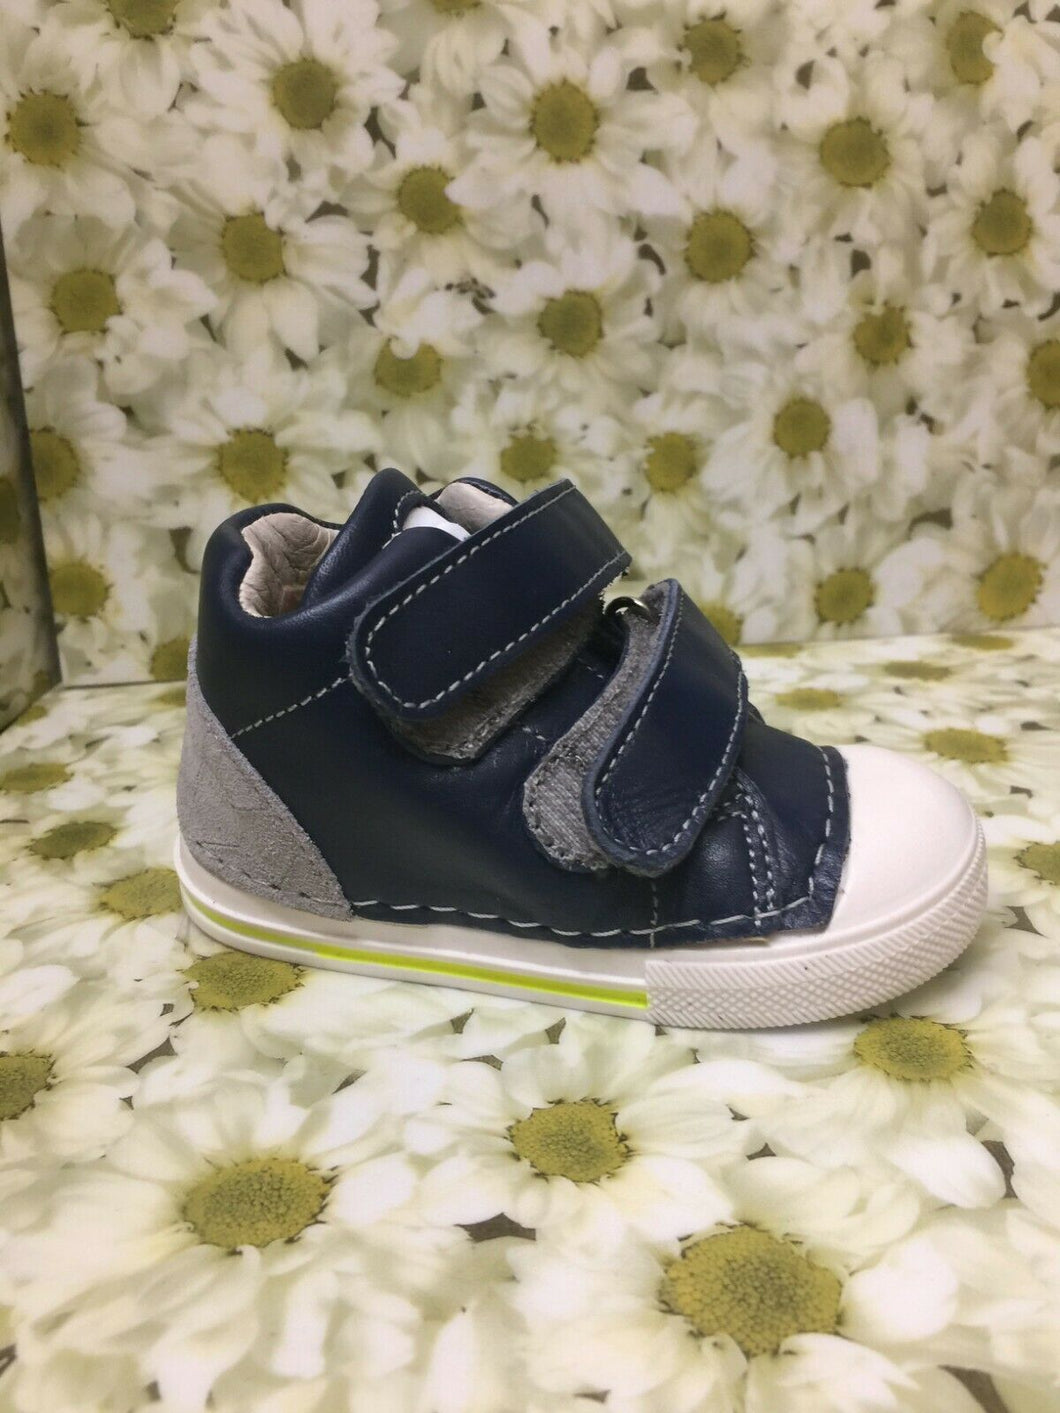 Bo-Bell Childrens Toddlers Glass Casual Leather Velcro Sneakers Turtle Grey